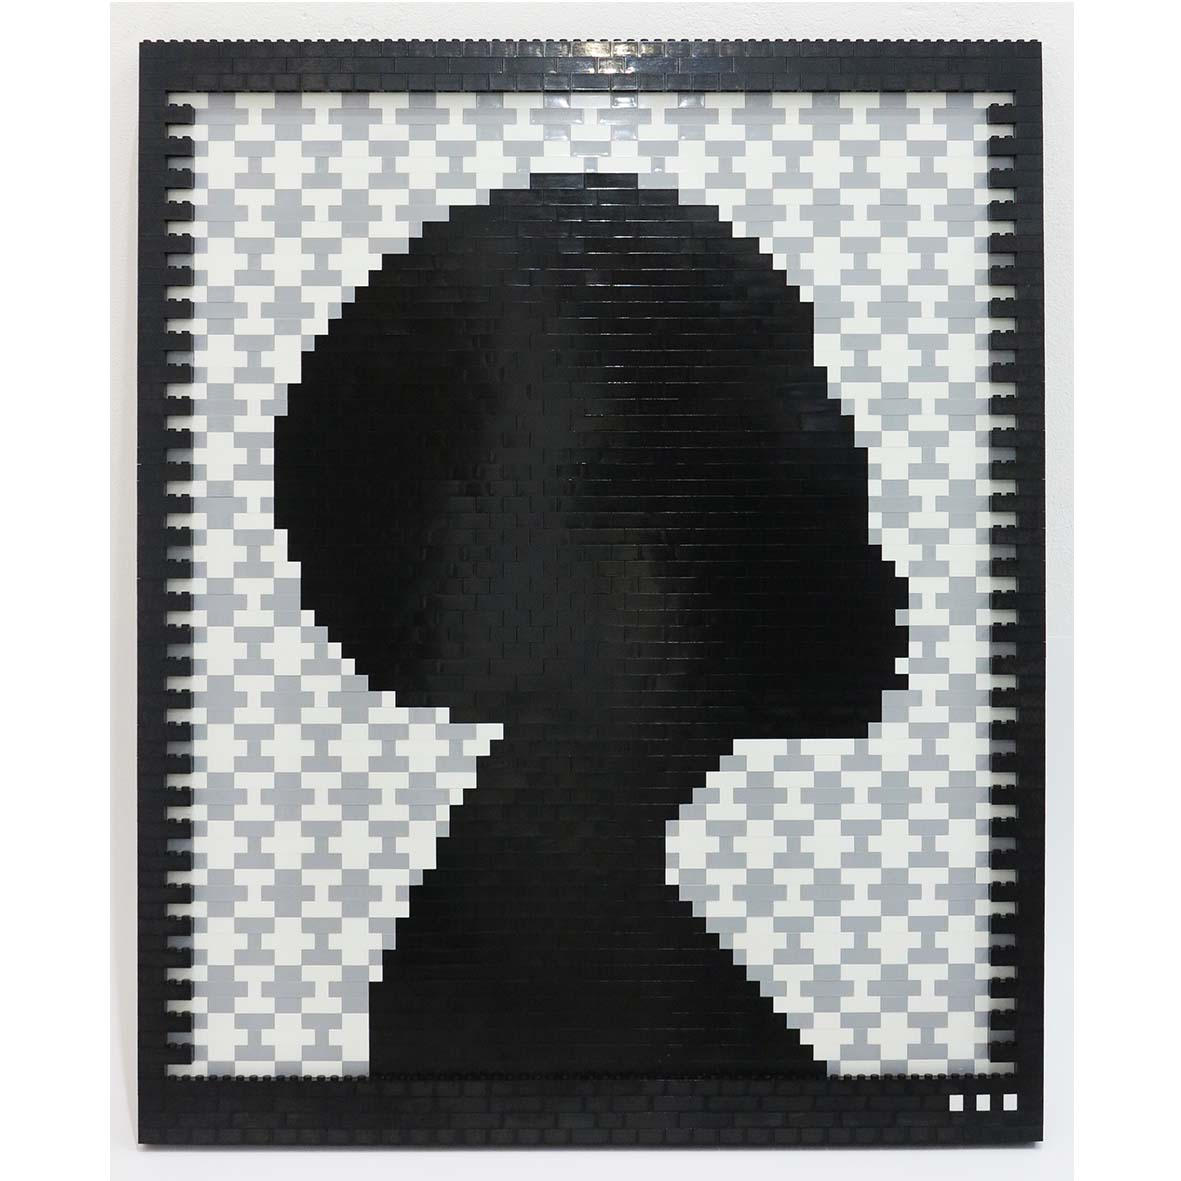 Faatimah Mohamed-Luke Reflections of a Queen II Yoruba – Grey , 2018 2107 ABS plastic building blocks adhered to Aluminium 65 x 53.5 cm